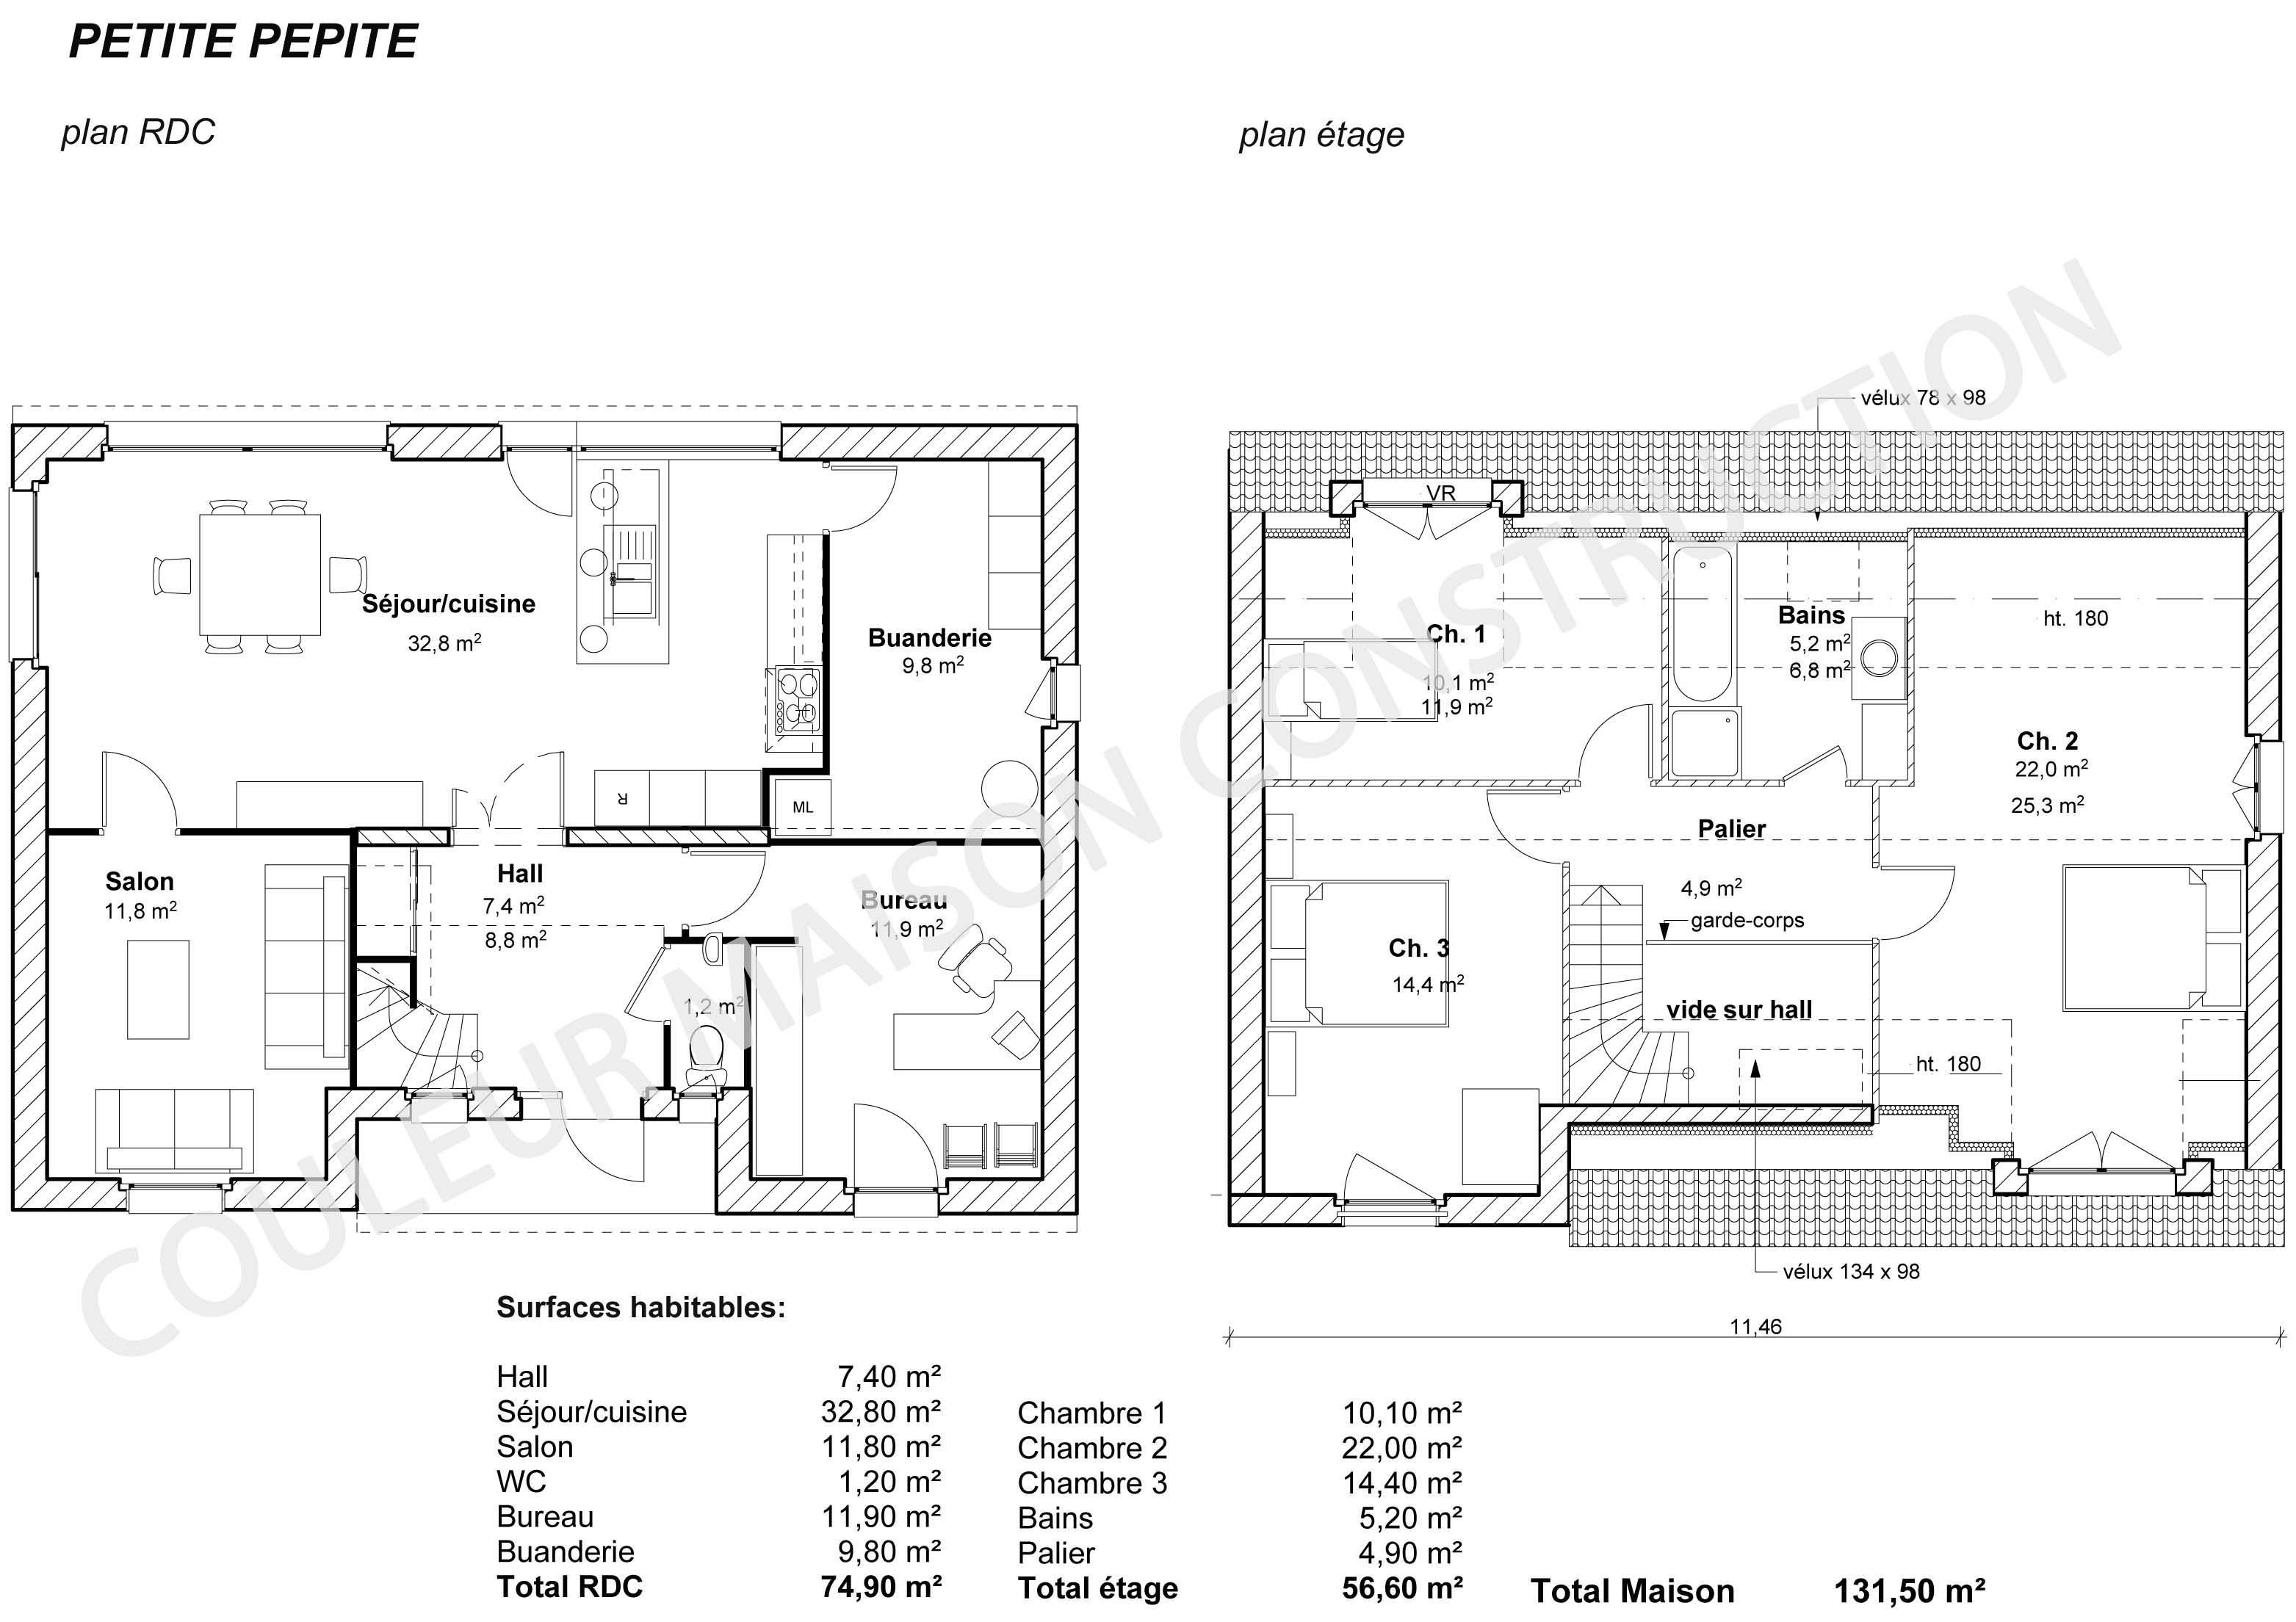 Couleur maison construction plan de maison petite p pite for Plan de maison traditionnelle gratuit